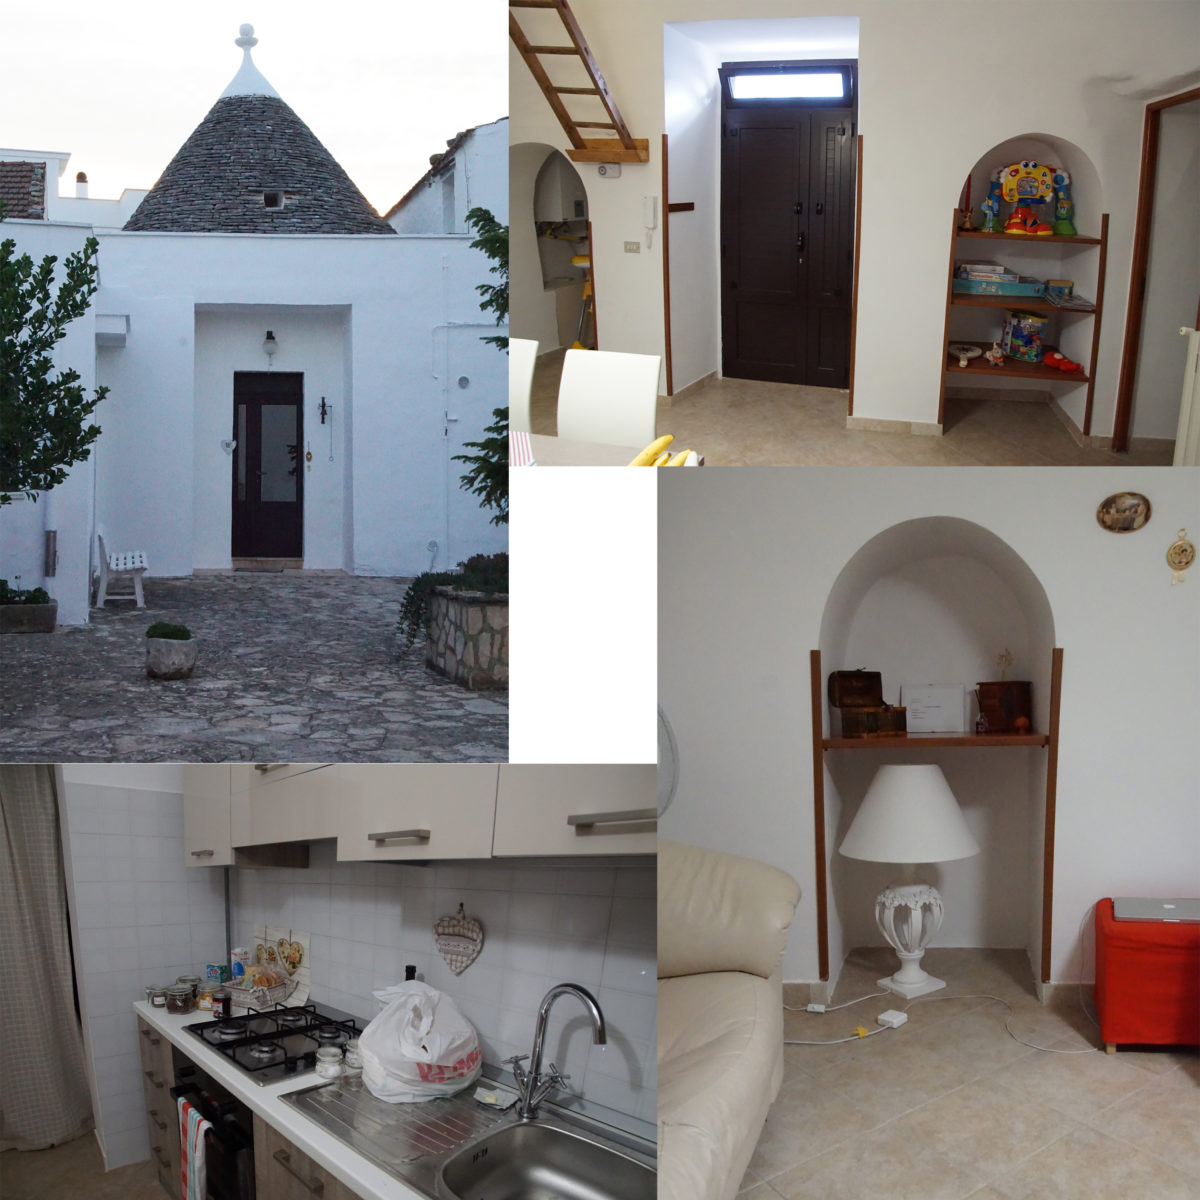 Our Night in a Trullo